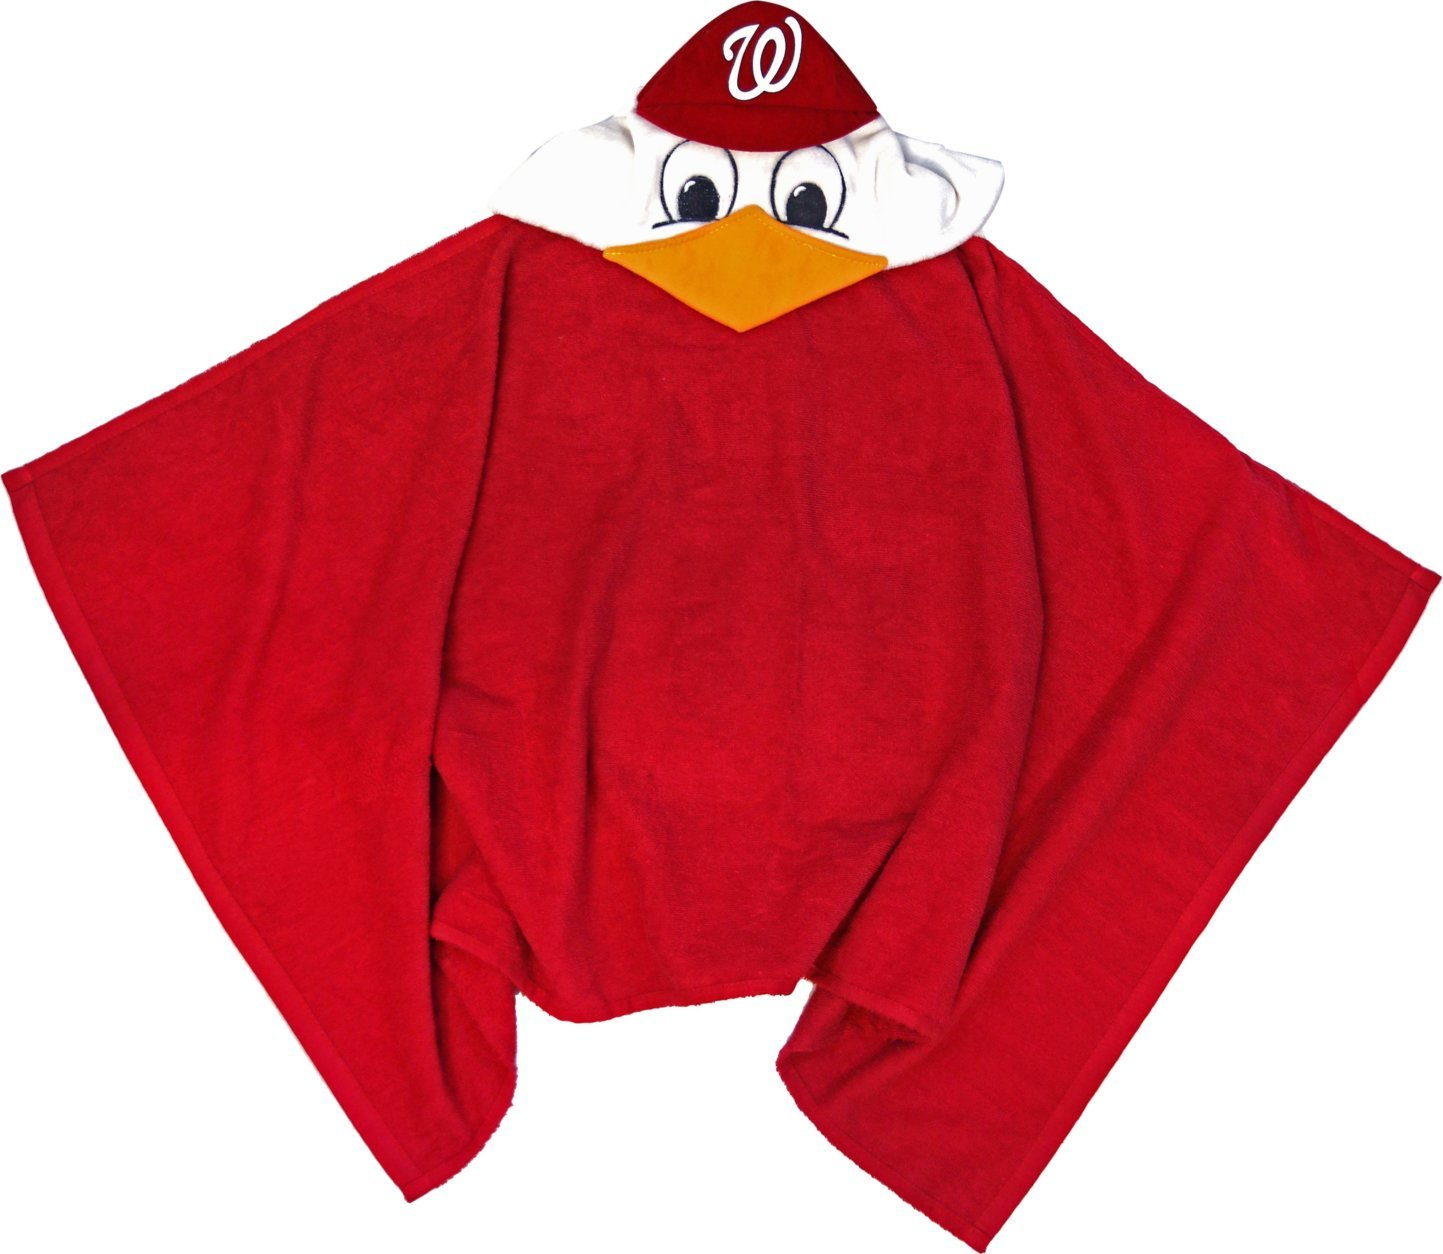 A Screech Hooded Towel will be given to the first 10,000 fans ages 12 and under on June 23. (Courtesy the Washington Nationals)